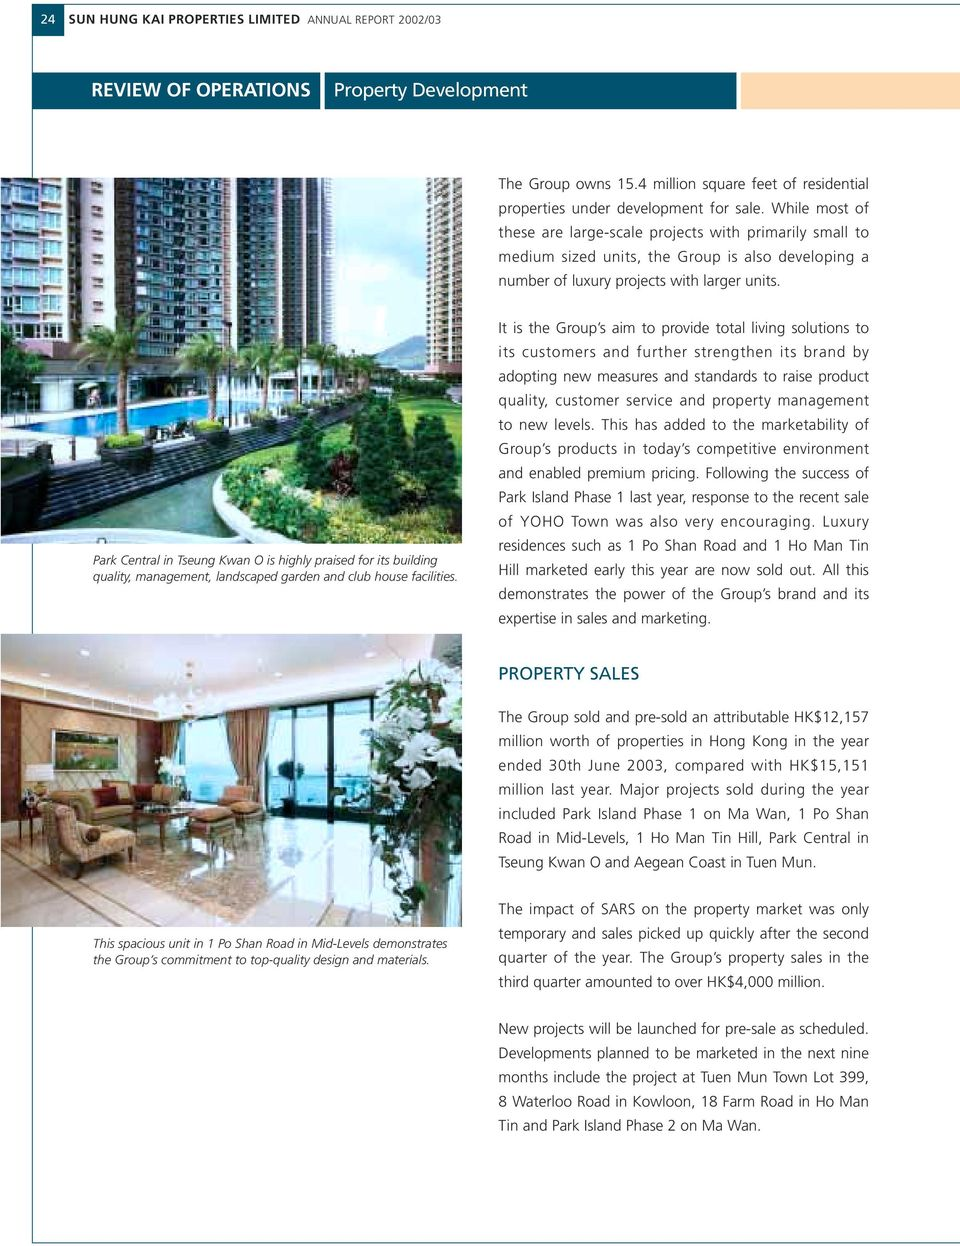 Park Central in Tseung Kwan O is highly praised for its building quality, management, landscaped garden and club house facilities.